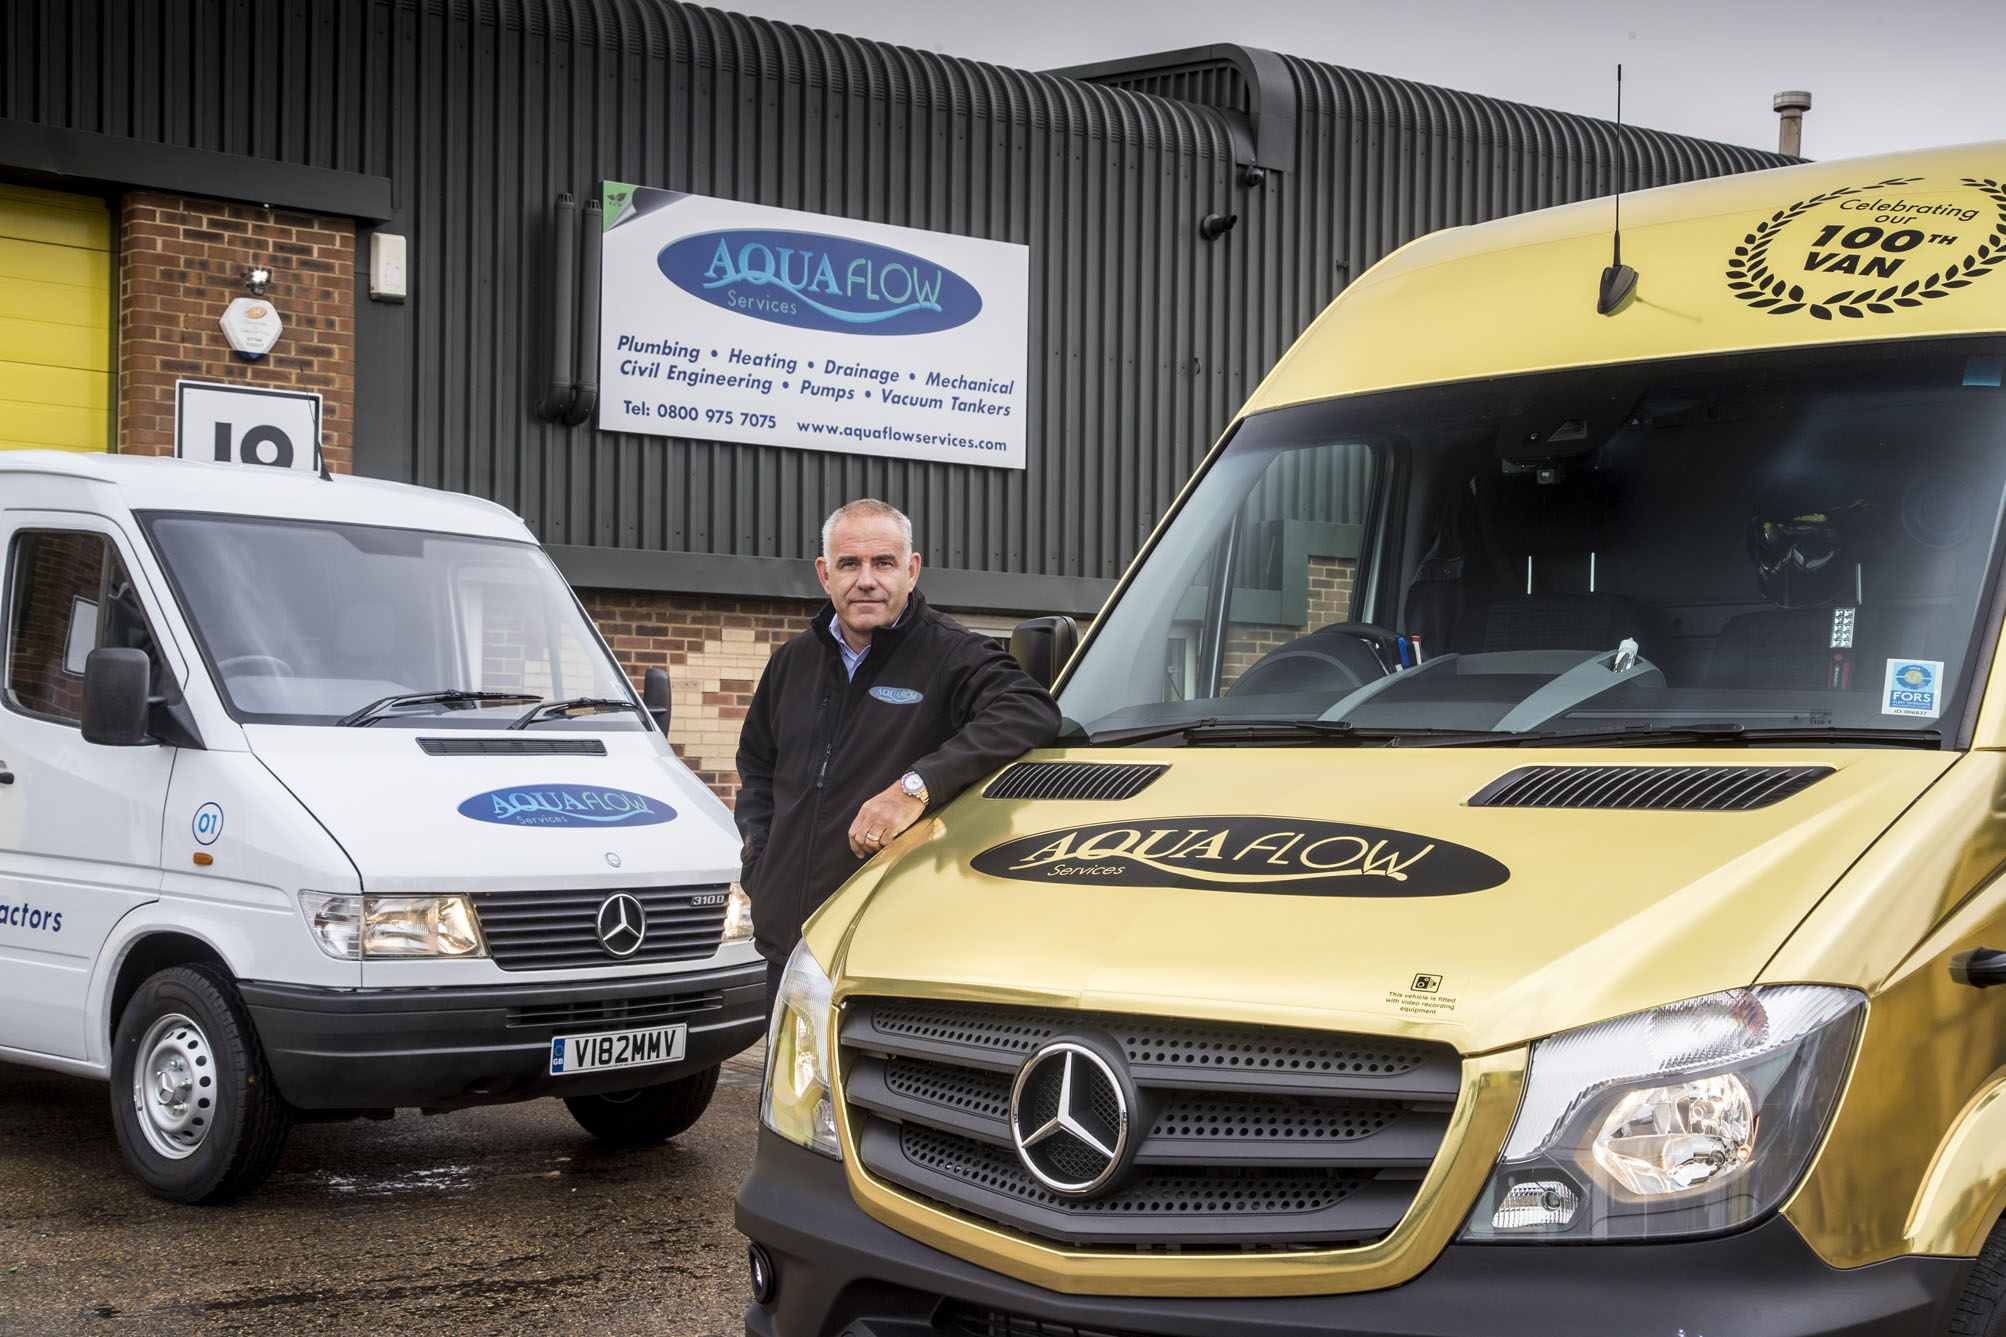 Aquaflow 'goes for gold' with Mercedes-Benz Sprinter